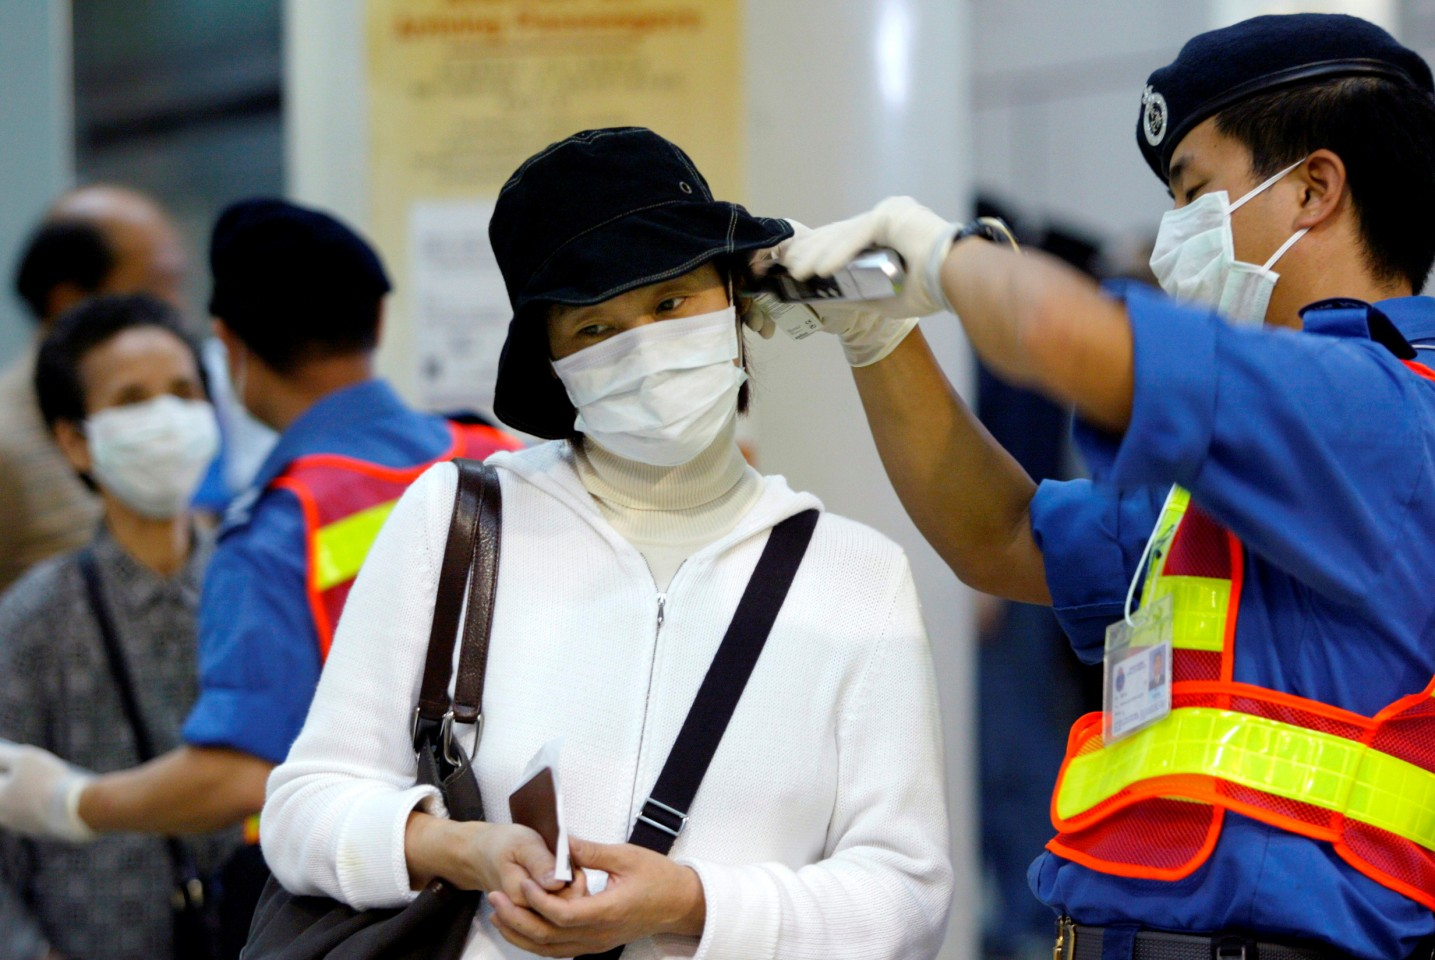 In this file photo, a health worker wearing a mask to protect from SARS takes a woman's temperature, after she arrived in Hong Kong by train from Guangzhou, on 24 April 2003. (Kin Cheung/File Photo/Reuters)